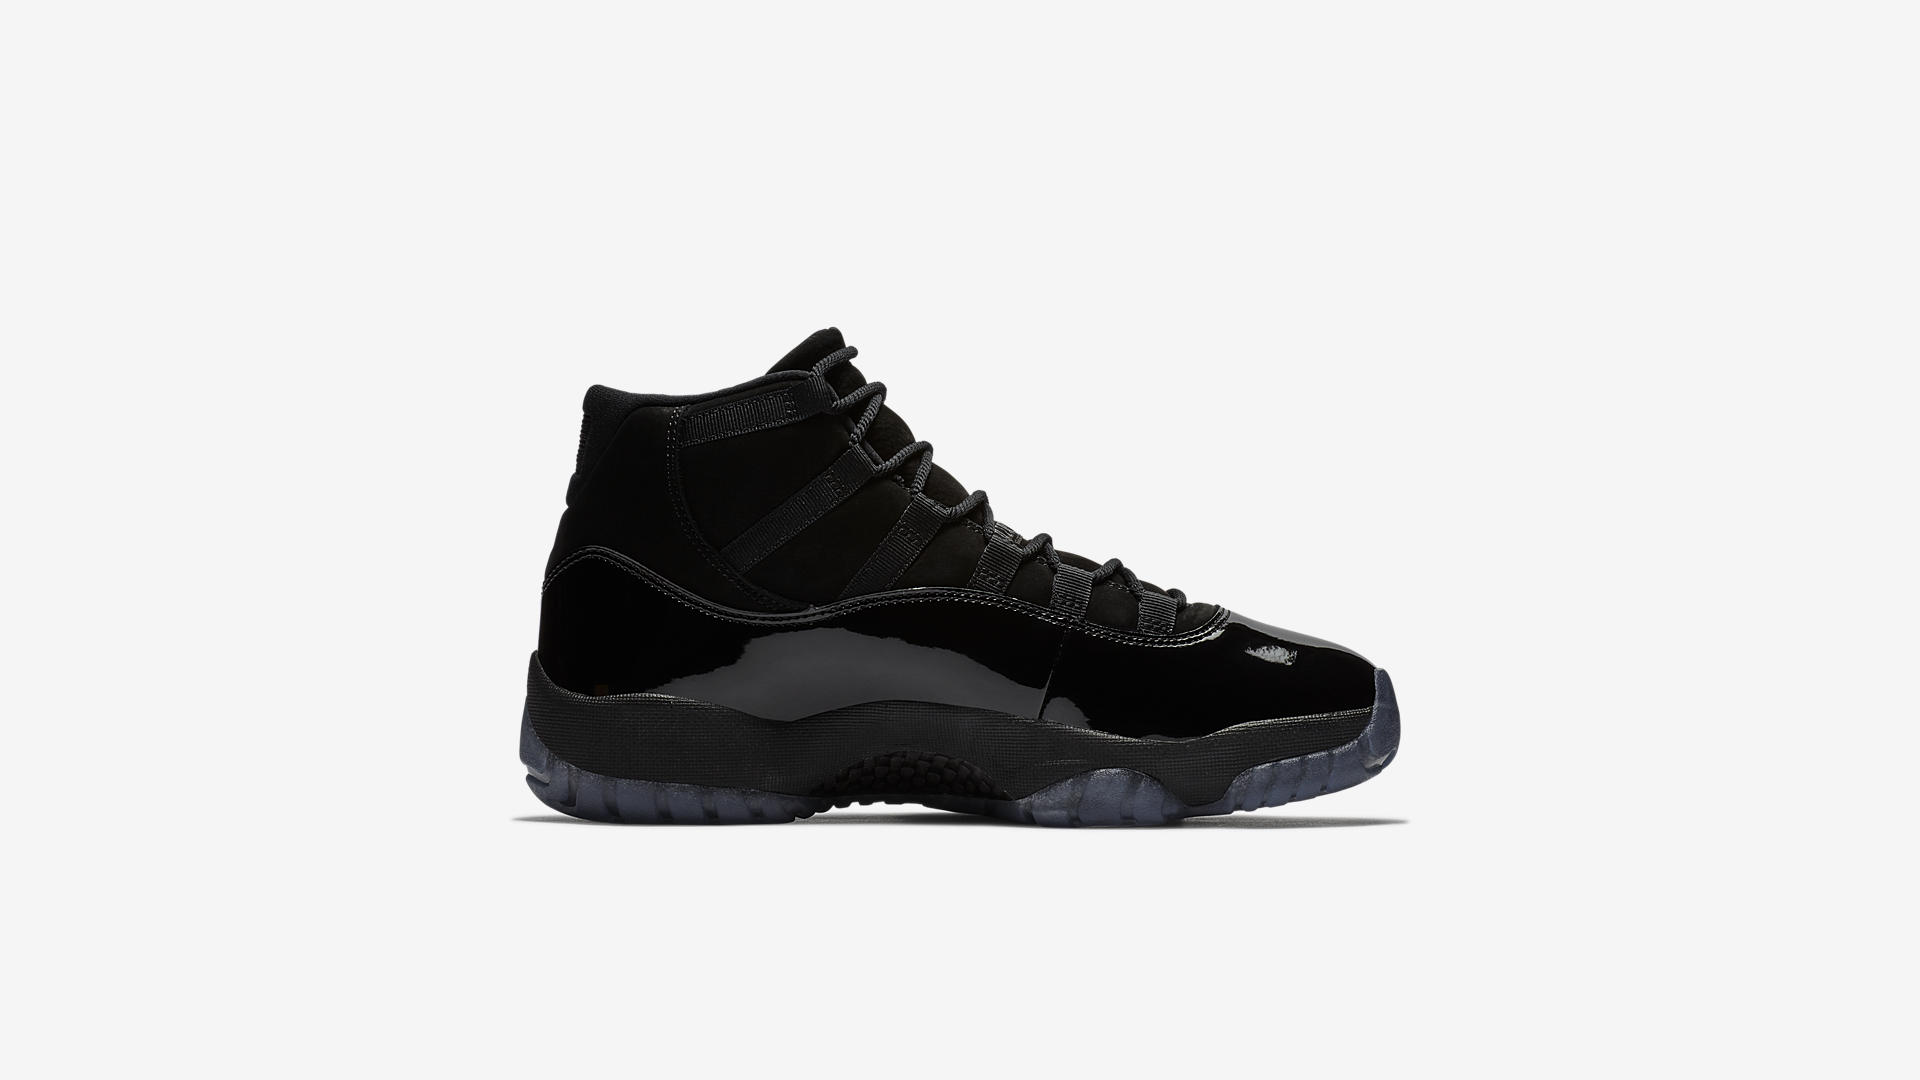 378037 005 Air Jordan 11 Retro Prom Night 3